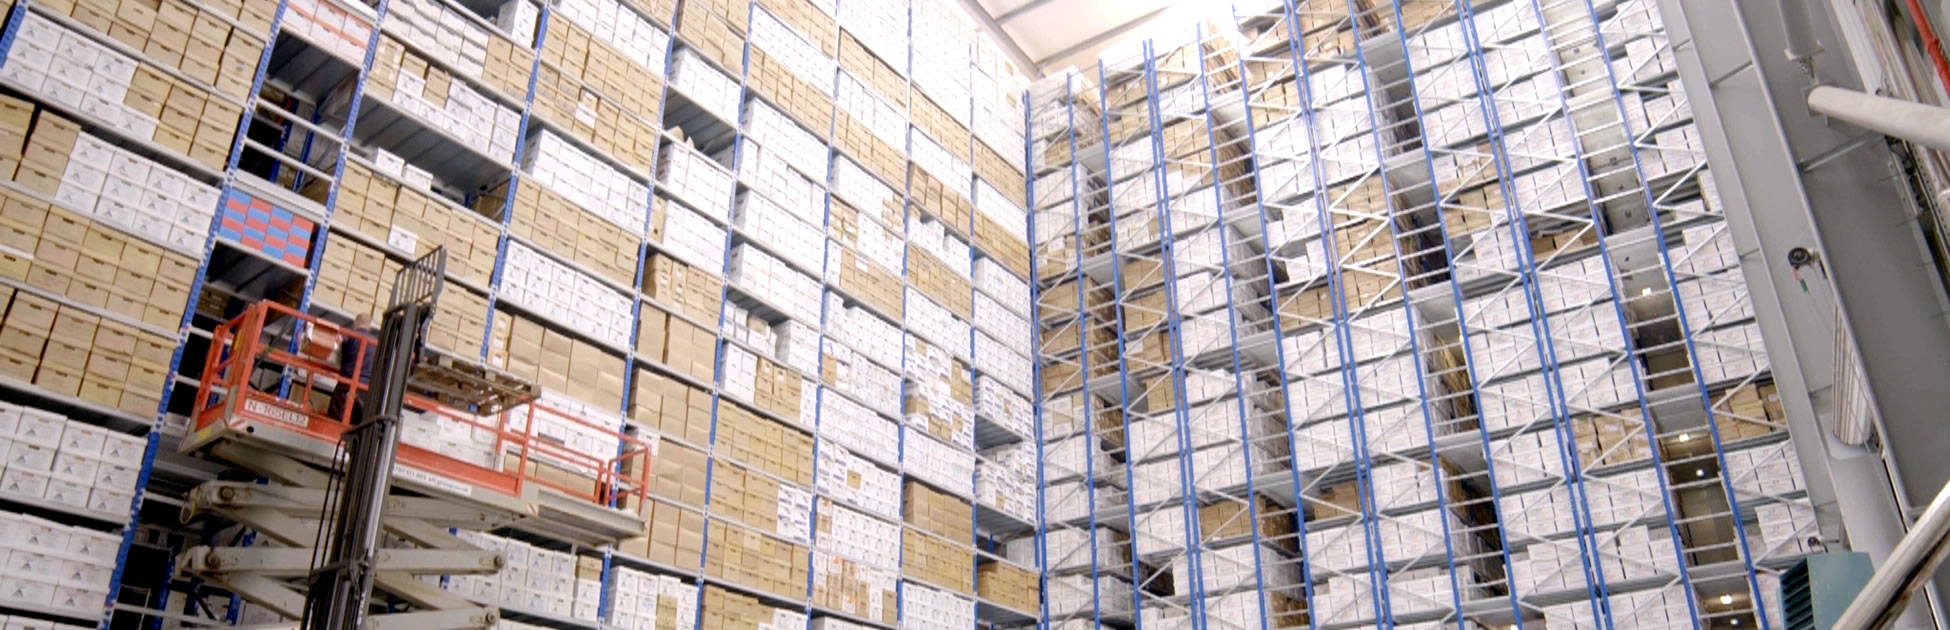 Dataspace UK 7-Tier Archive Storage Facility